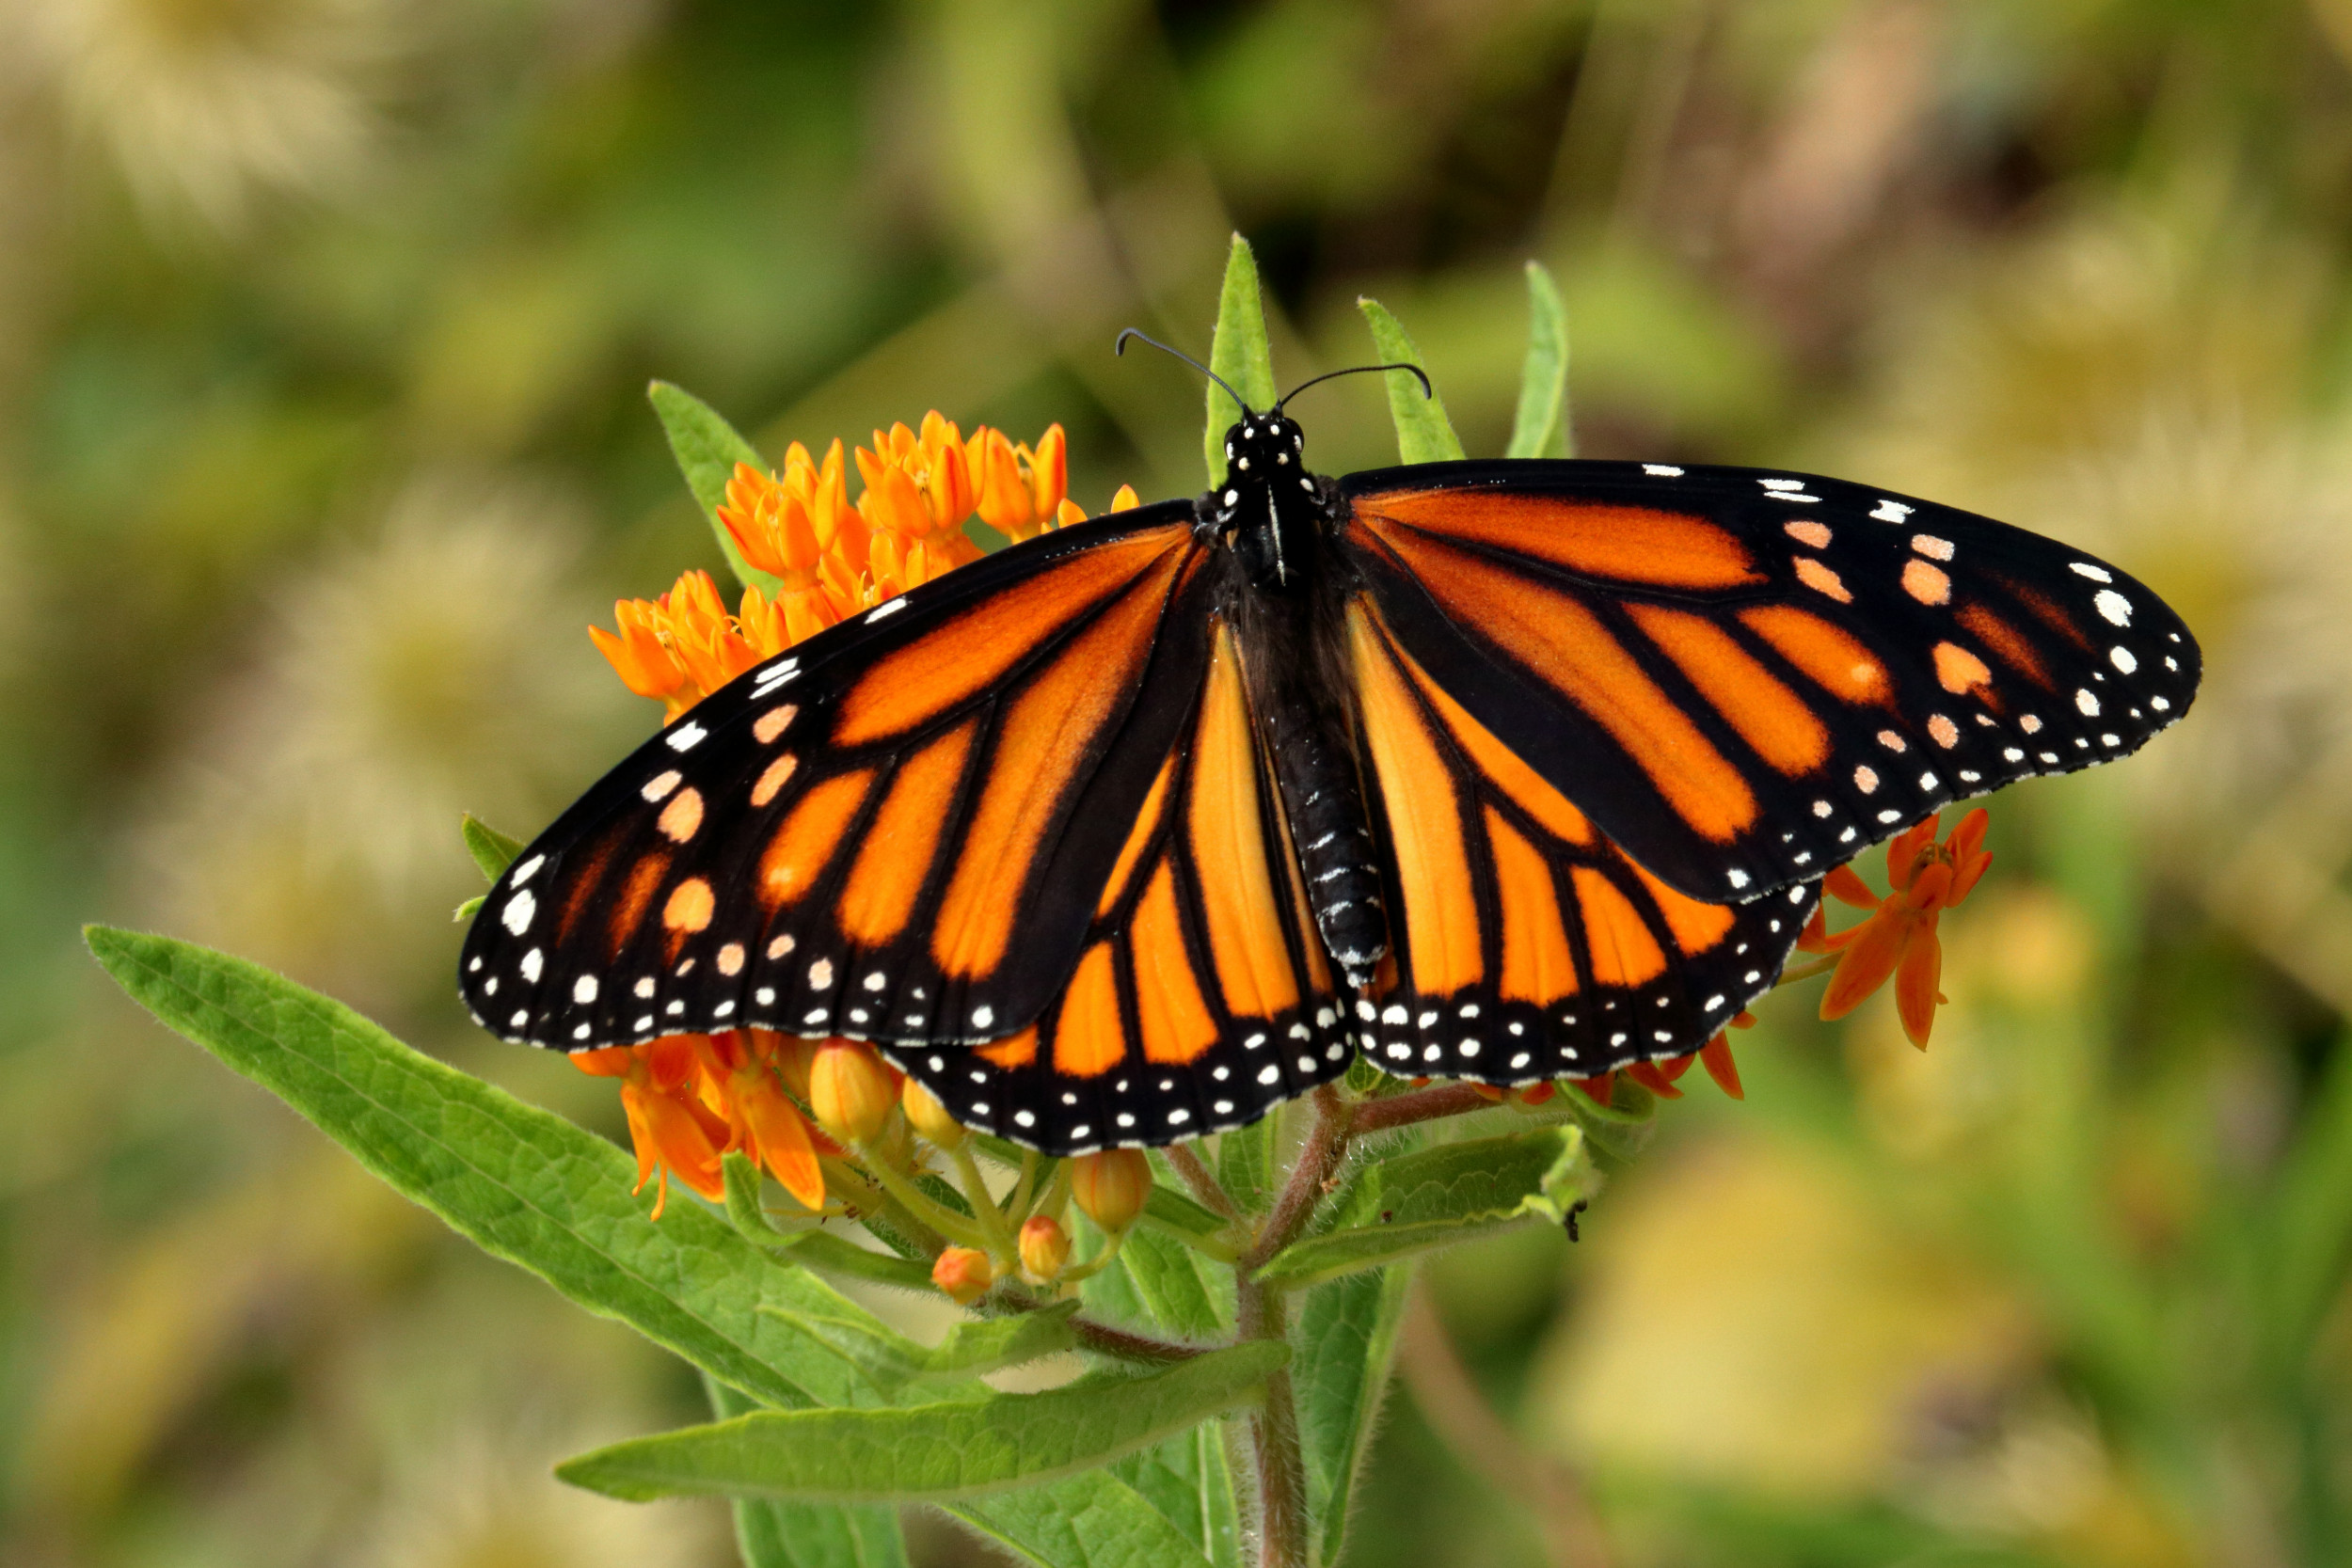 Butterfly Death: Ohio Butterflies Are Dying As Monarchs ...